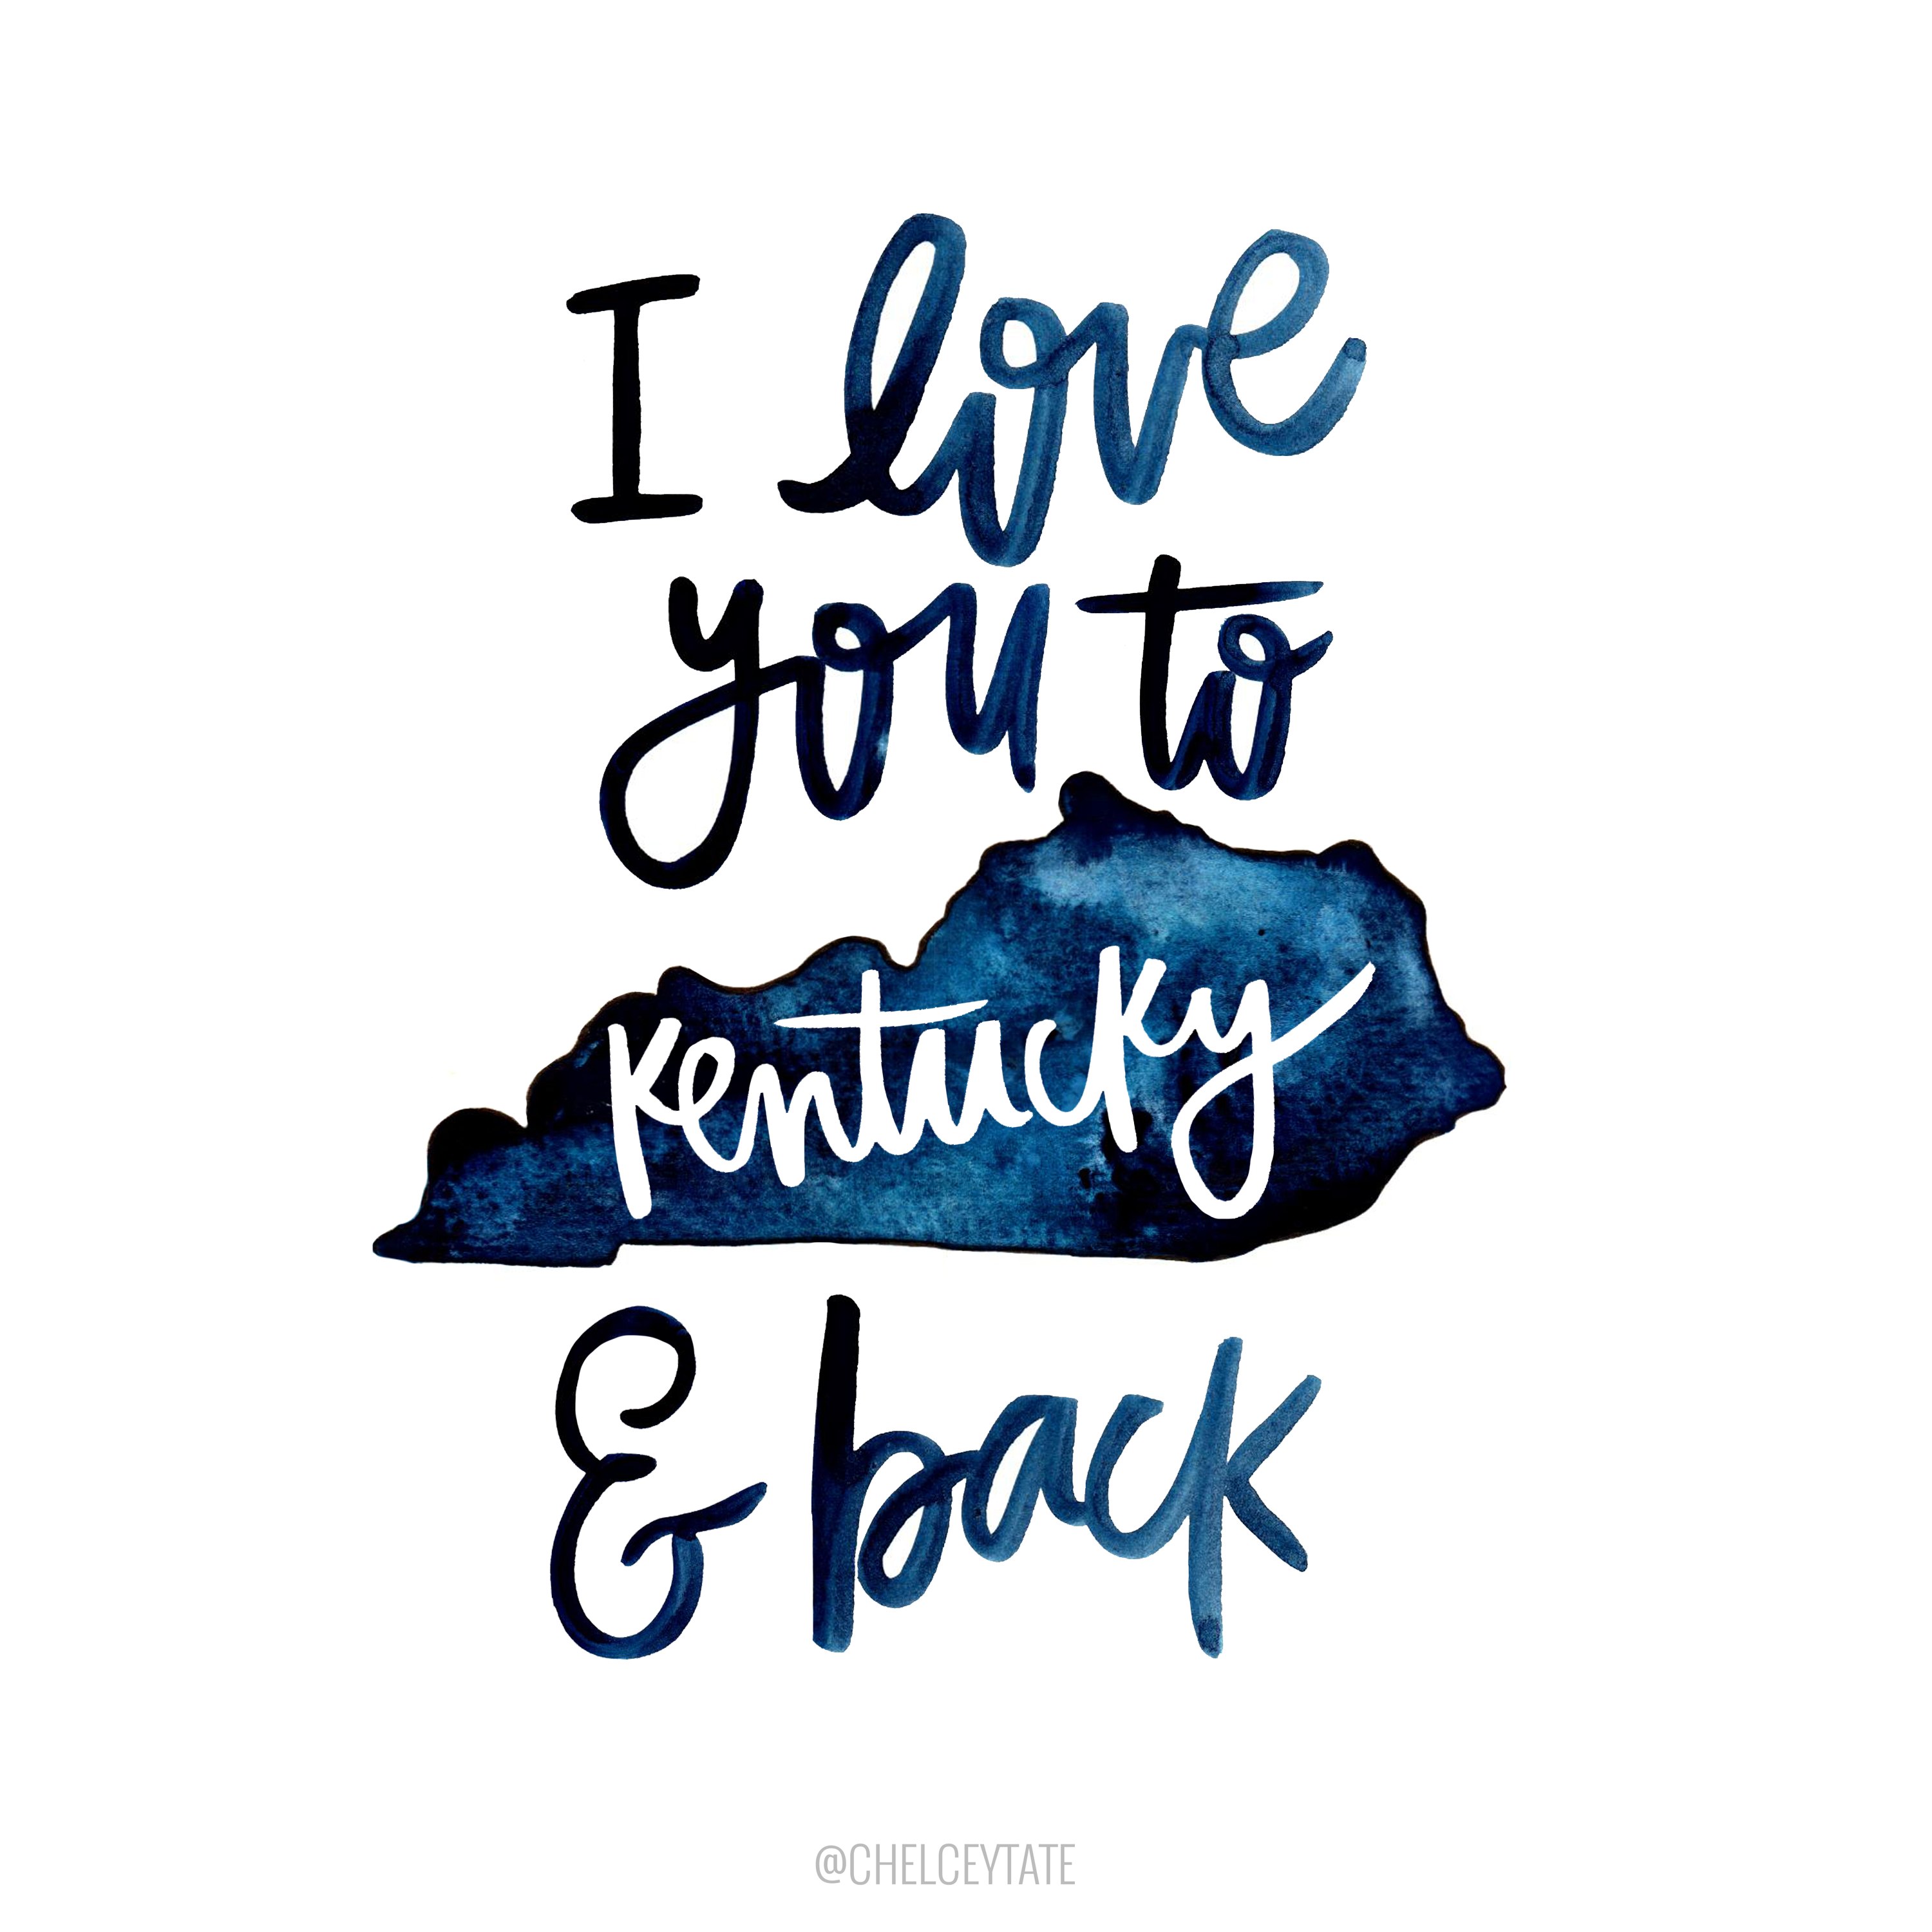 I love you to kentucky back hand lettered and water color home decor print to show kentucky pride gift for kentucky fans chelceytatedesigns com